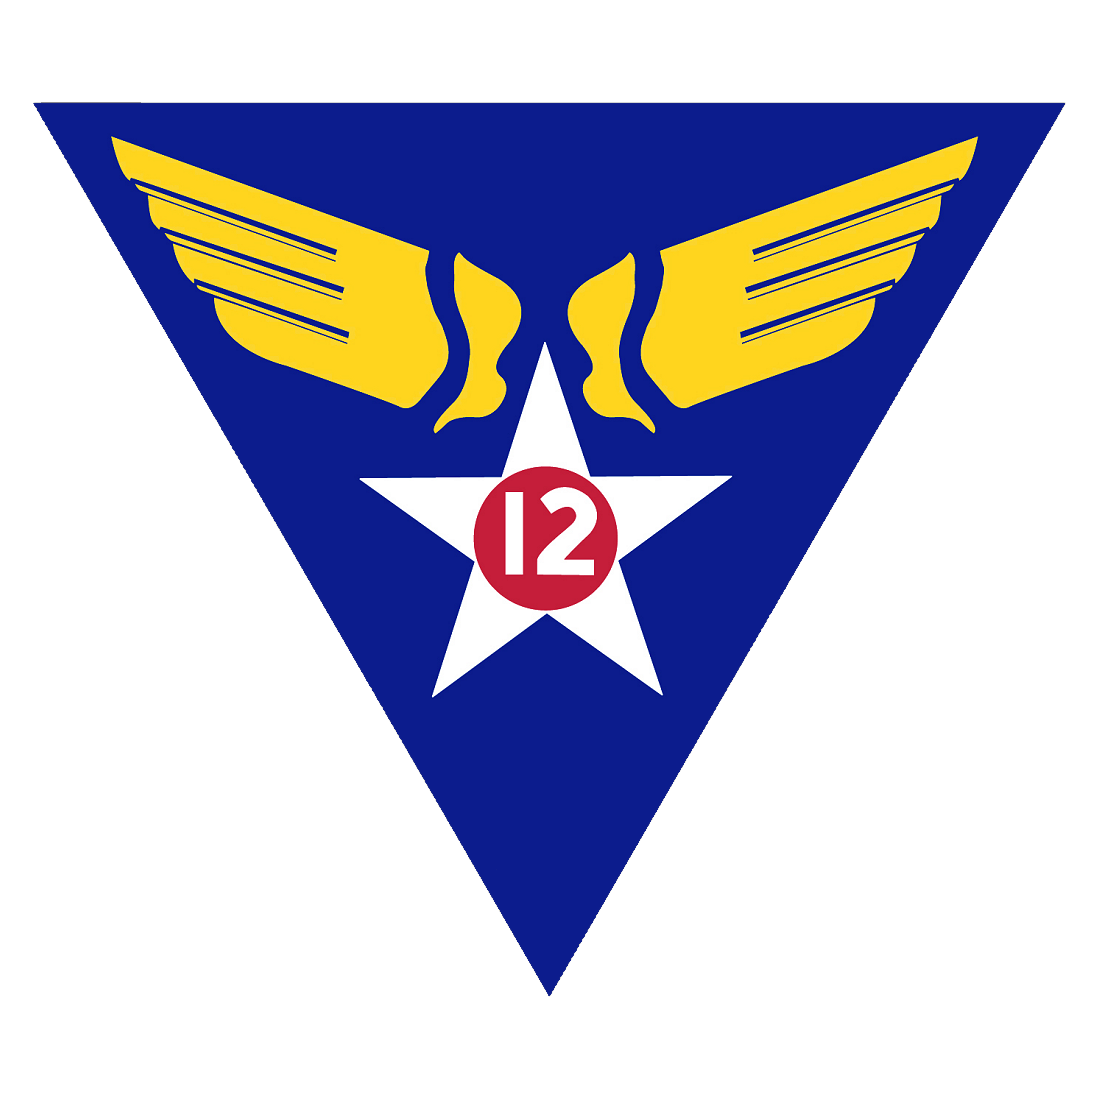 Us army air forces shoulder sleeve insignia air forces wwii us army air forces shoulder sleeve insignia air forces wwii and immediate post war era biocorpaavc Gallery